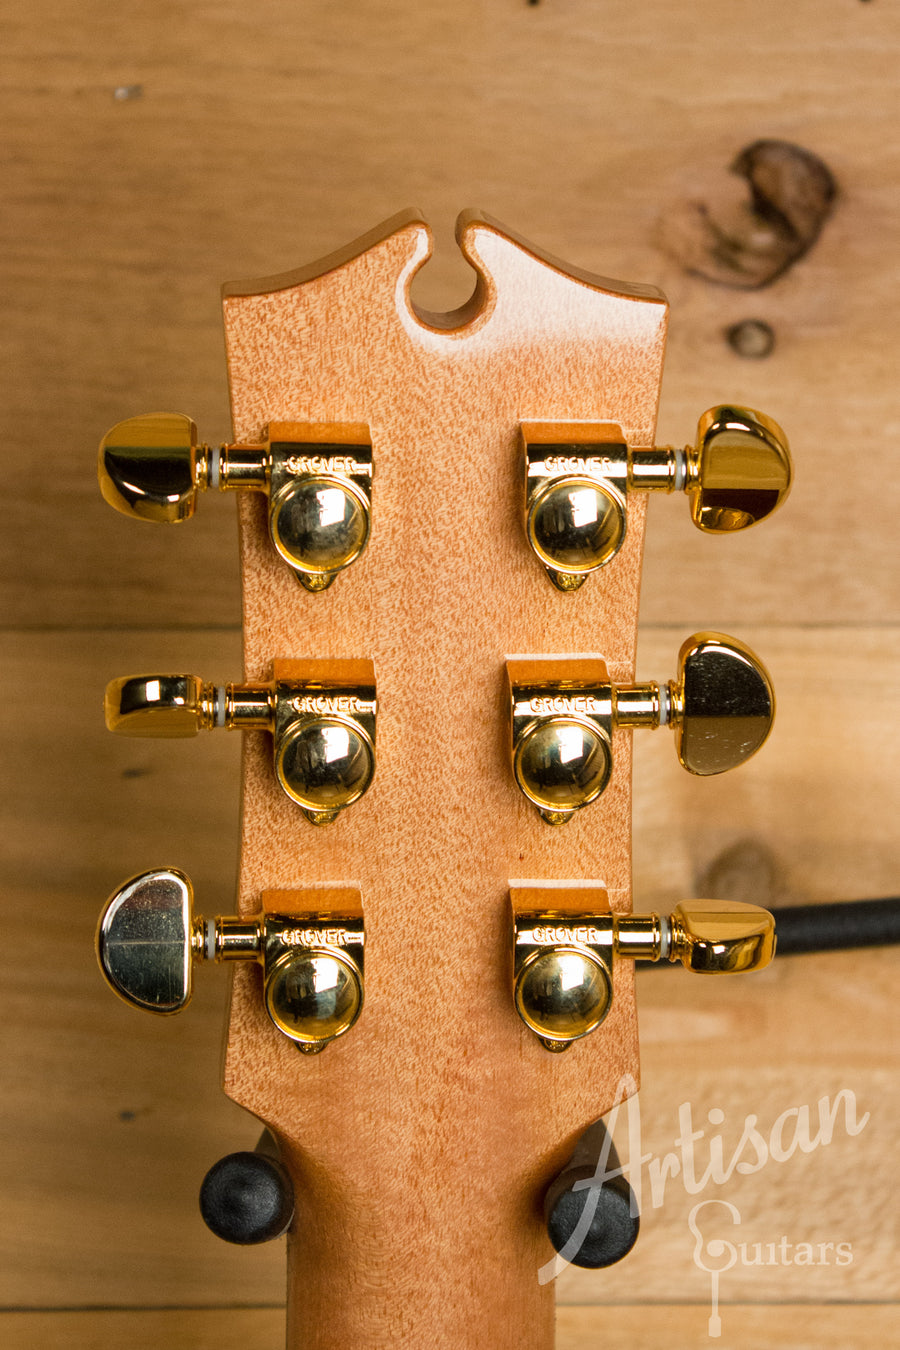 Maton EM 100C 808 Messiah Series Guitar with Sitka and Indian Rosewood Cutaway Pre-Owned 2011 ID-11080 - Artisan Guitars